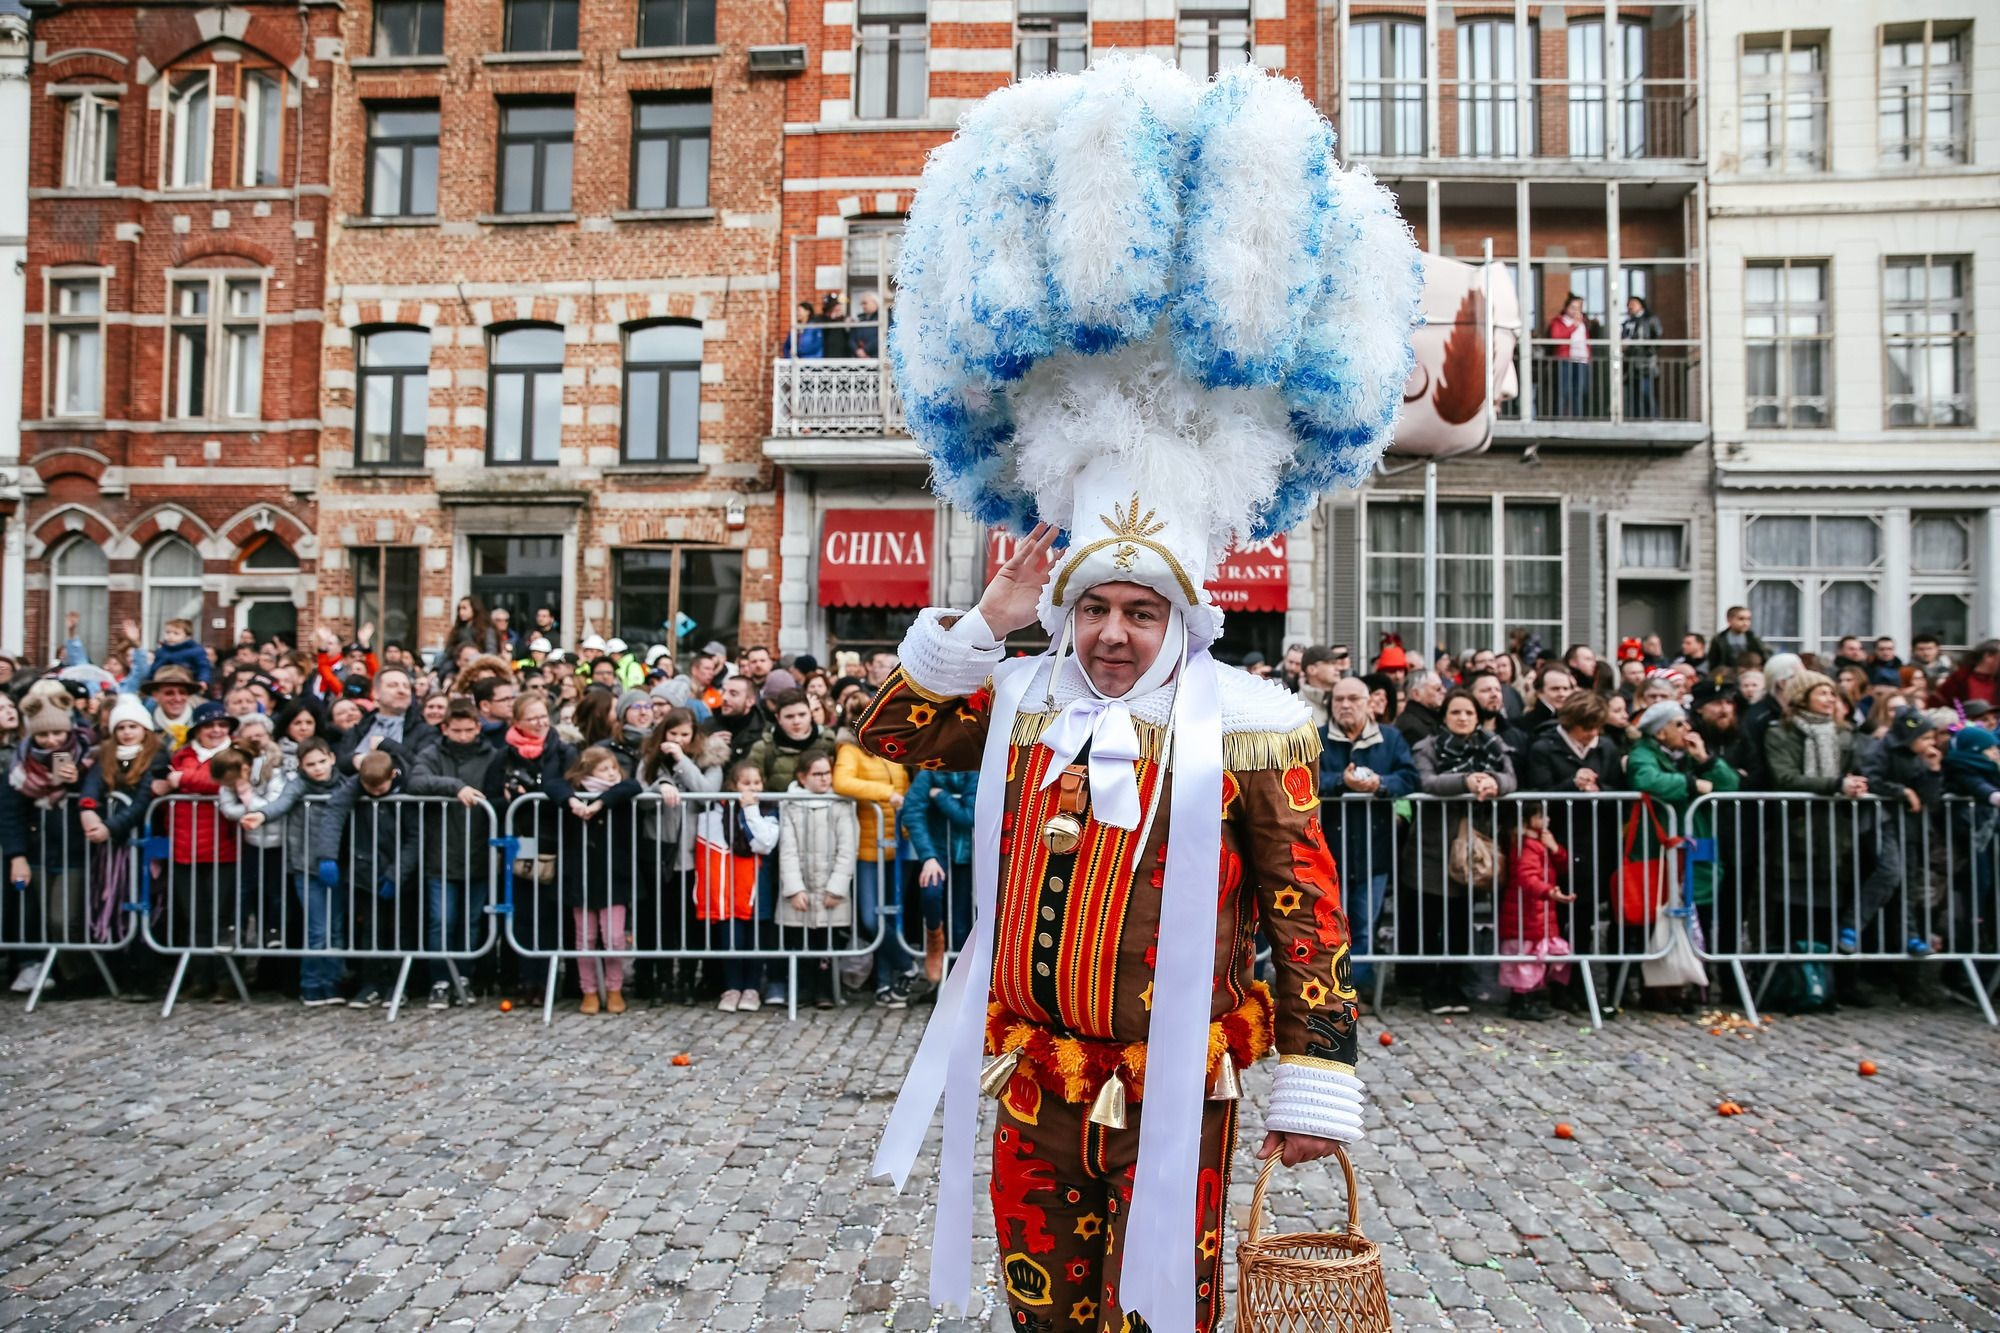 "(190306) -- BINCHE, March 6, 2019 (Xinhua) -- A local resident wearing costume of ""Gille"" attends the parade of Mardi Gras (Shrove Tuesday), the last day of Carnival in Binche, Belgium, March 5, 2019. Binche's three-day carnival, a UNESCO World Heritage event and one of the most famous carnivals in Europe, reached its climax on Tuesday. The Gille costume is a tunic and trousers made of jute decorated with 150 patterns. (Xinhua/Zhang Cheng) , BELGAIMAGE"